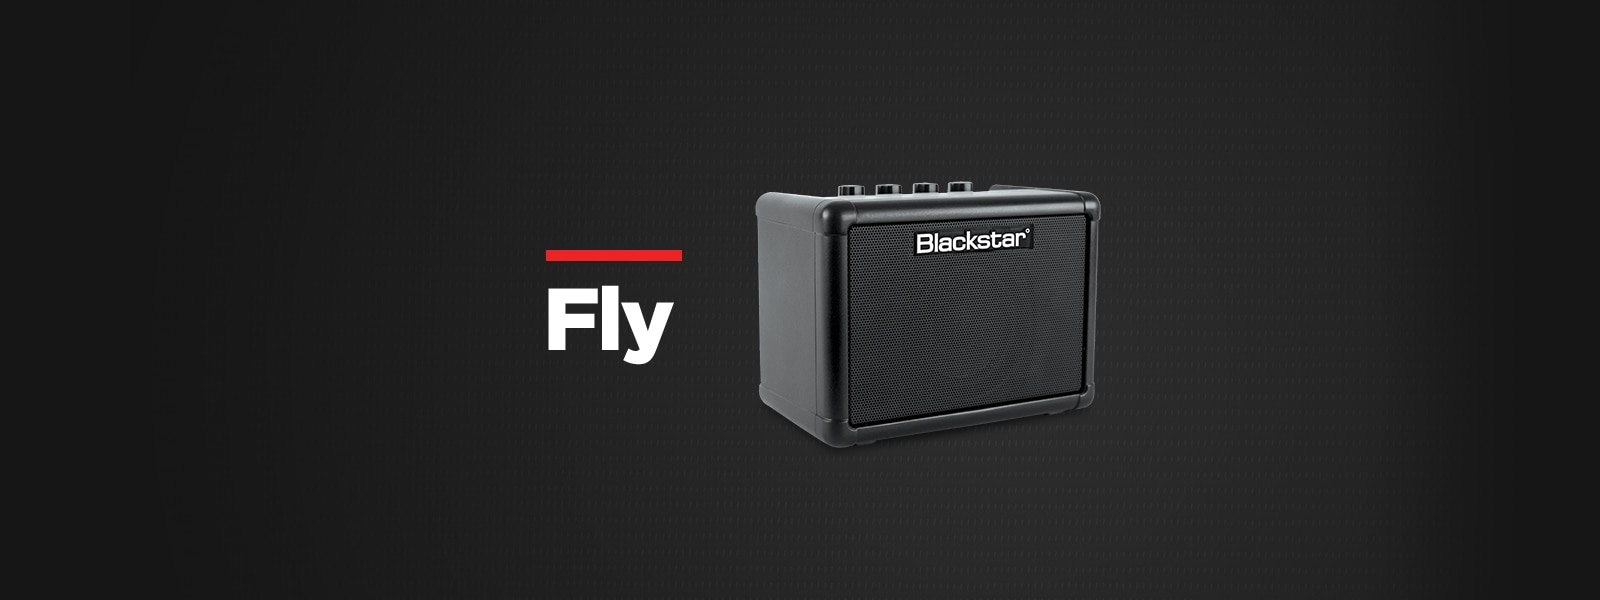 Blackstar Fly Amplifiers